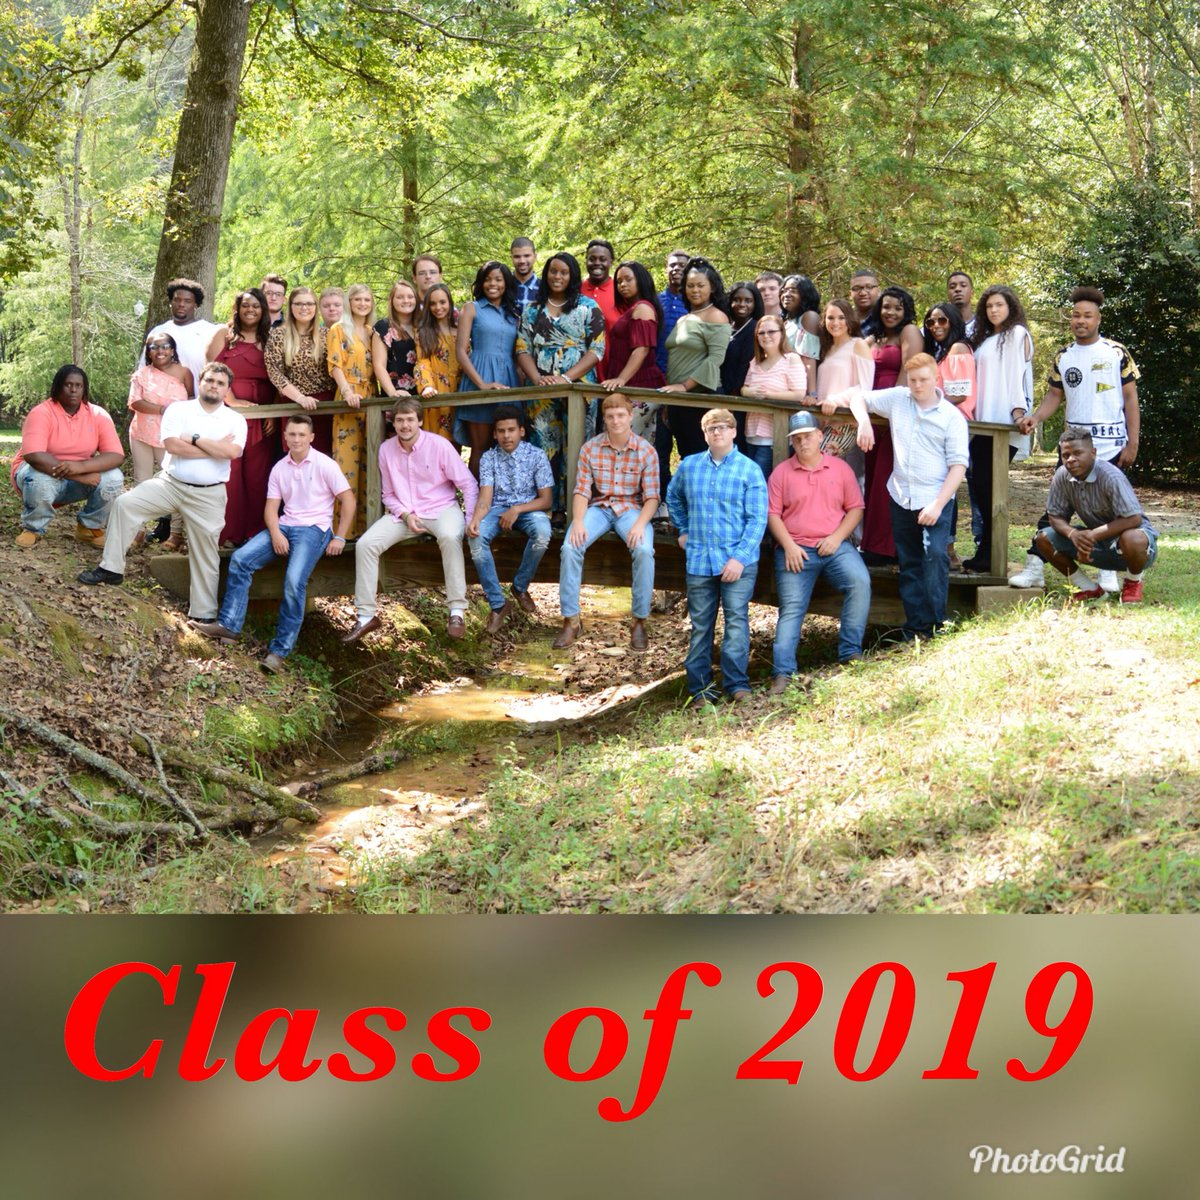 The Class of 2019 would like to invite each of you to their Christmas Program tomorrow night at 6:30 in the auditorium. Admission is $2. Children 4 and under will get in free. Popcorn, drinks, and other snacks will be sold for $1. All proceeds will go toward their Jr./Sr. Prom.